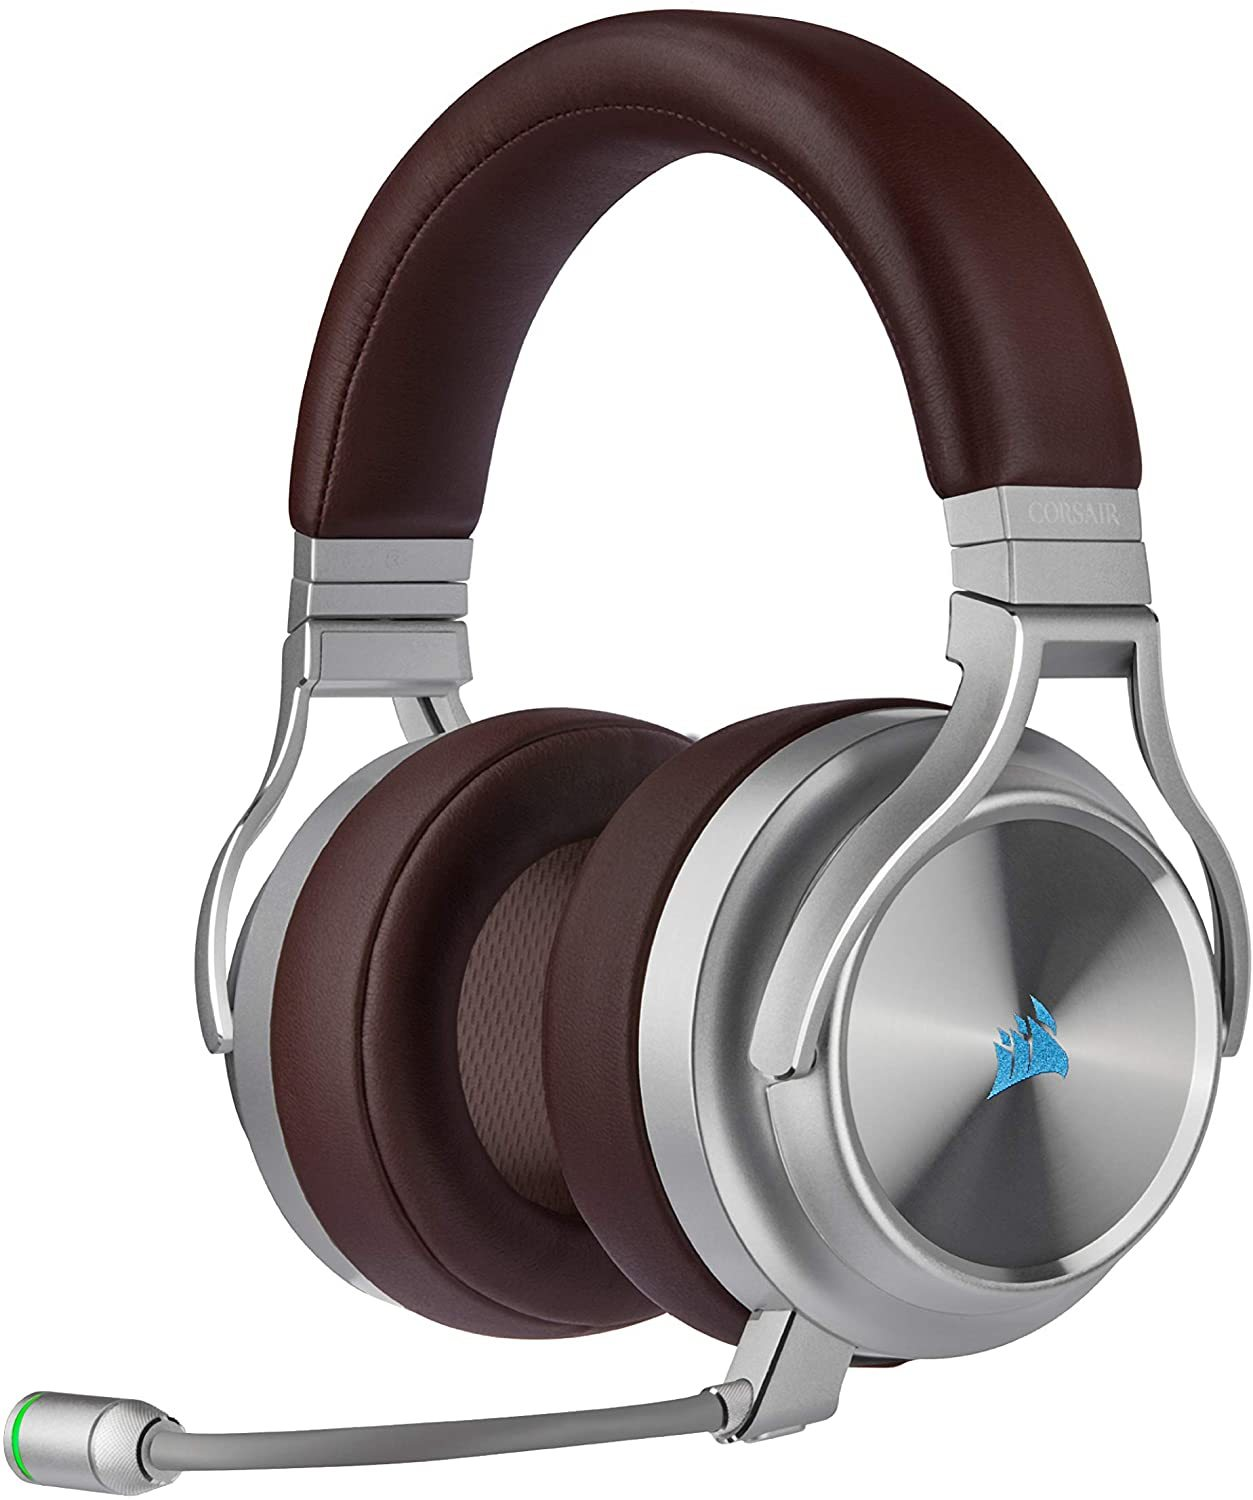 Corsair Virtuoso RGB Wireless SE Gaming Headset (Espresso) - Xbox One